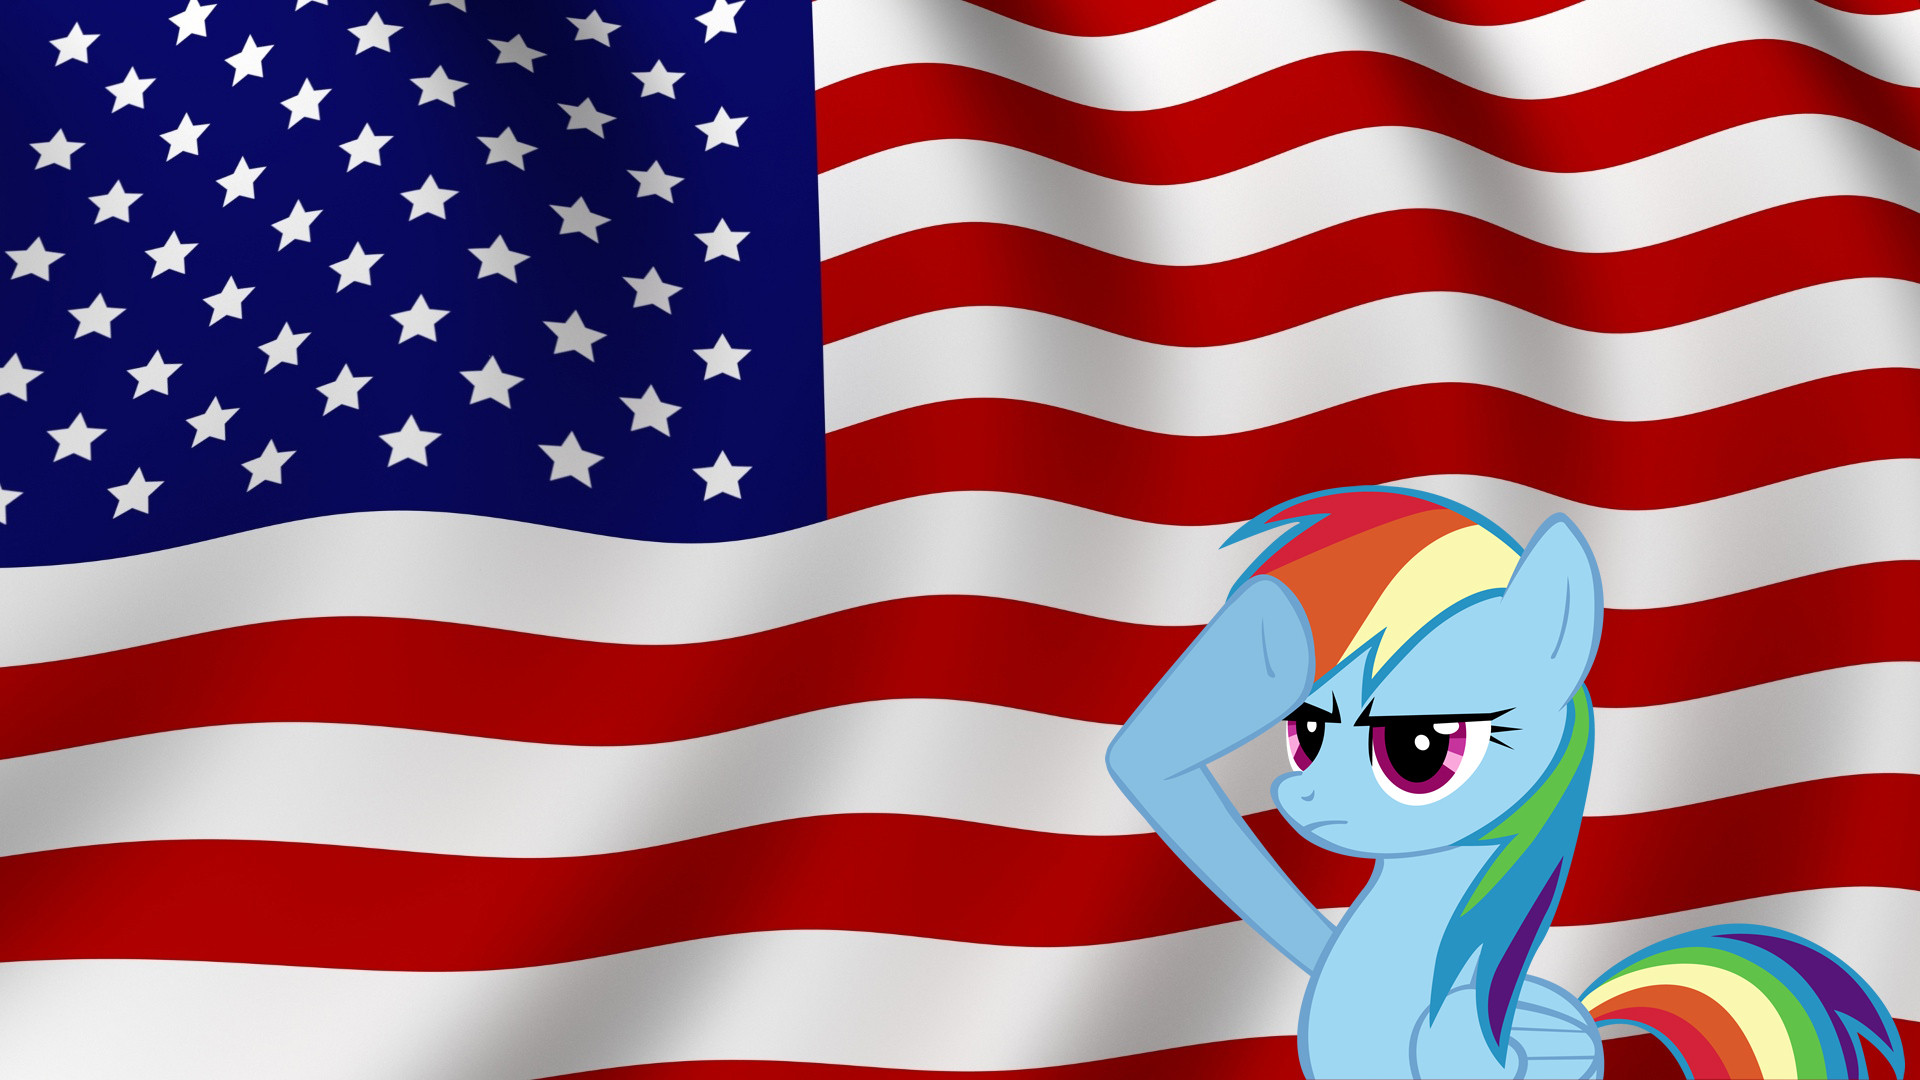 America Vs Mexico - MLP Version by ShadowDoomHunter on DeviantArt